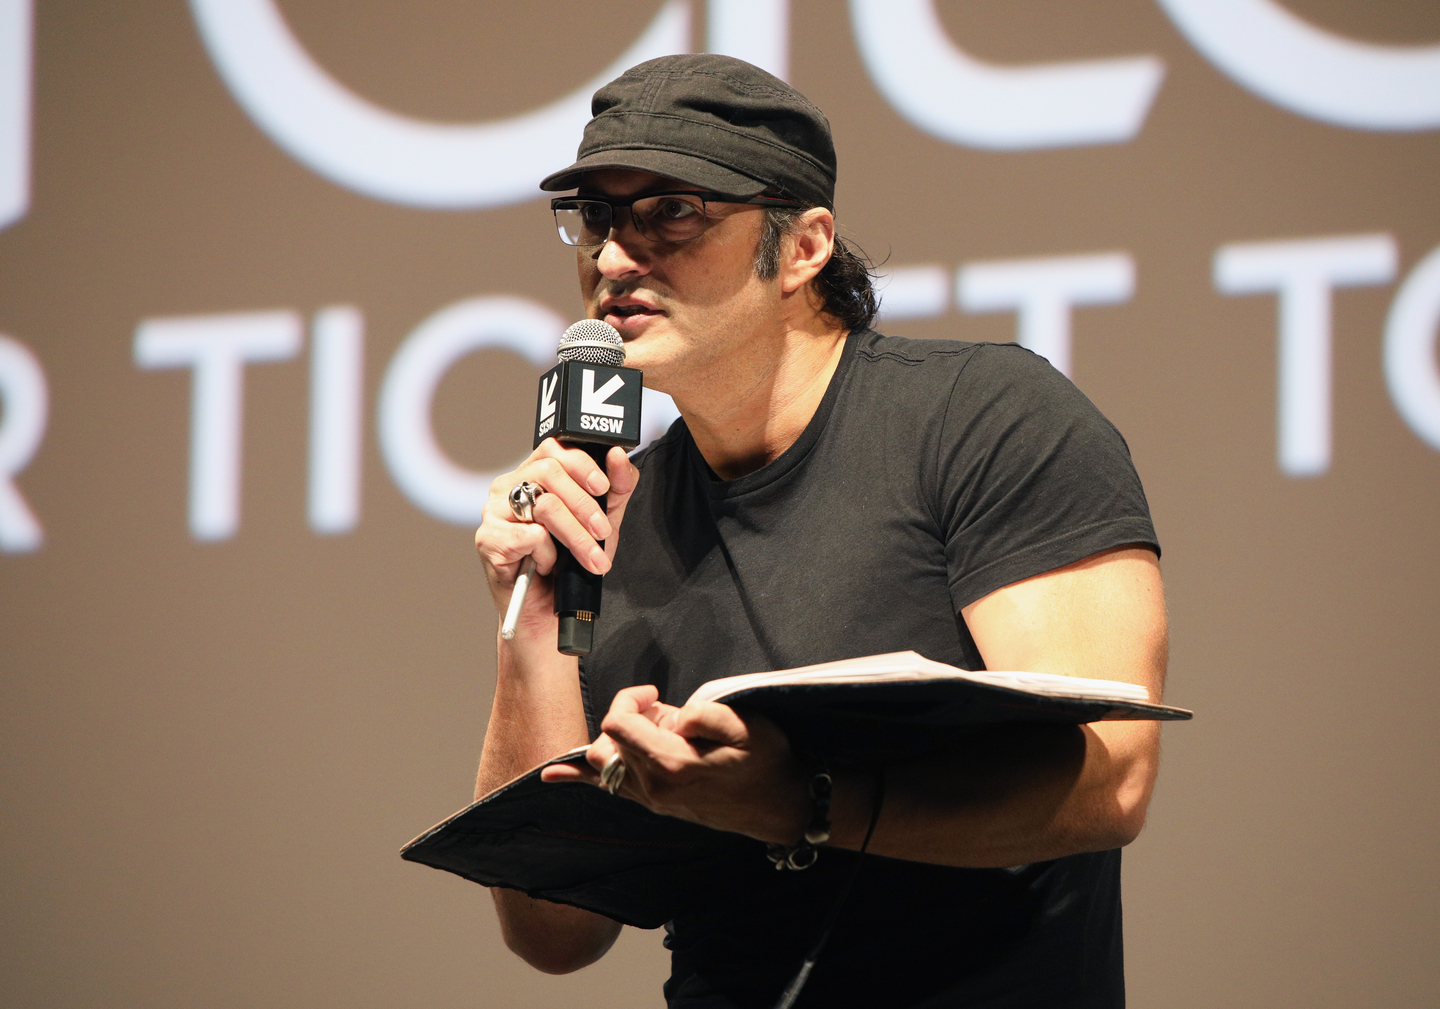 Robert Rodriguez speaks onstage at The Robert Rodriguez Film School and Red 11 premiere at Atom Theater.